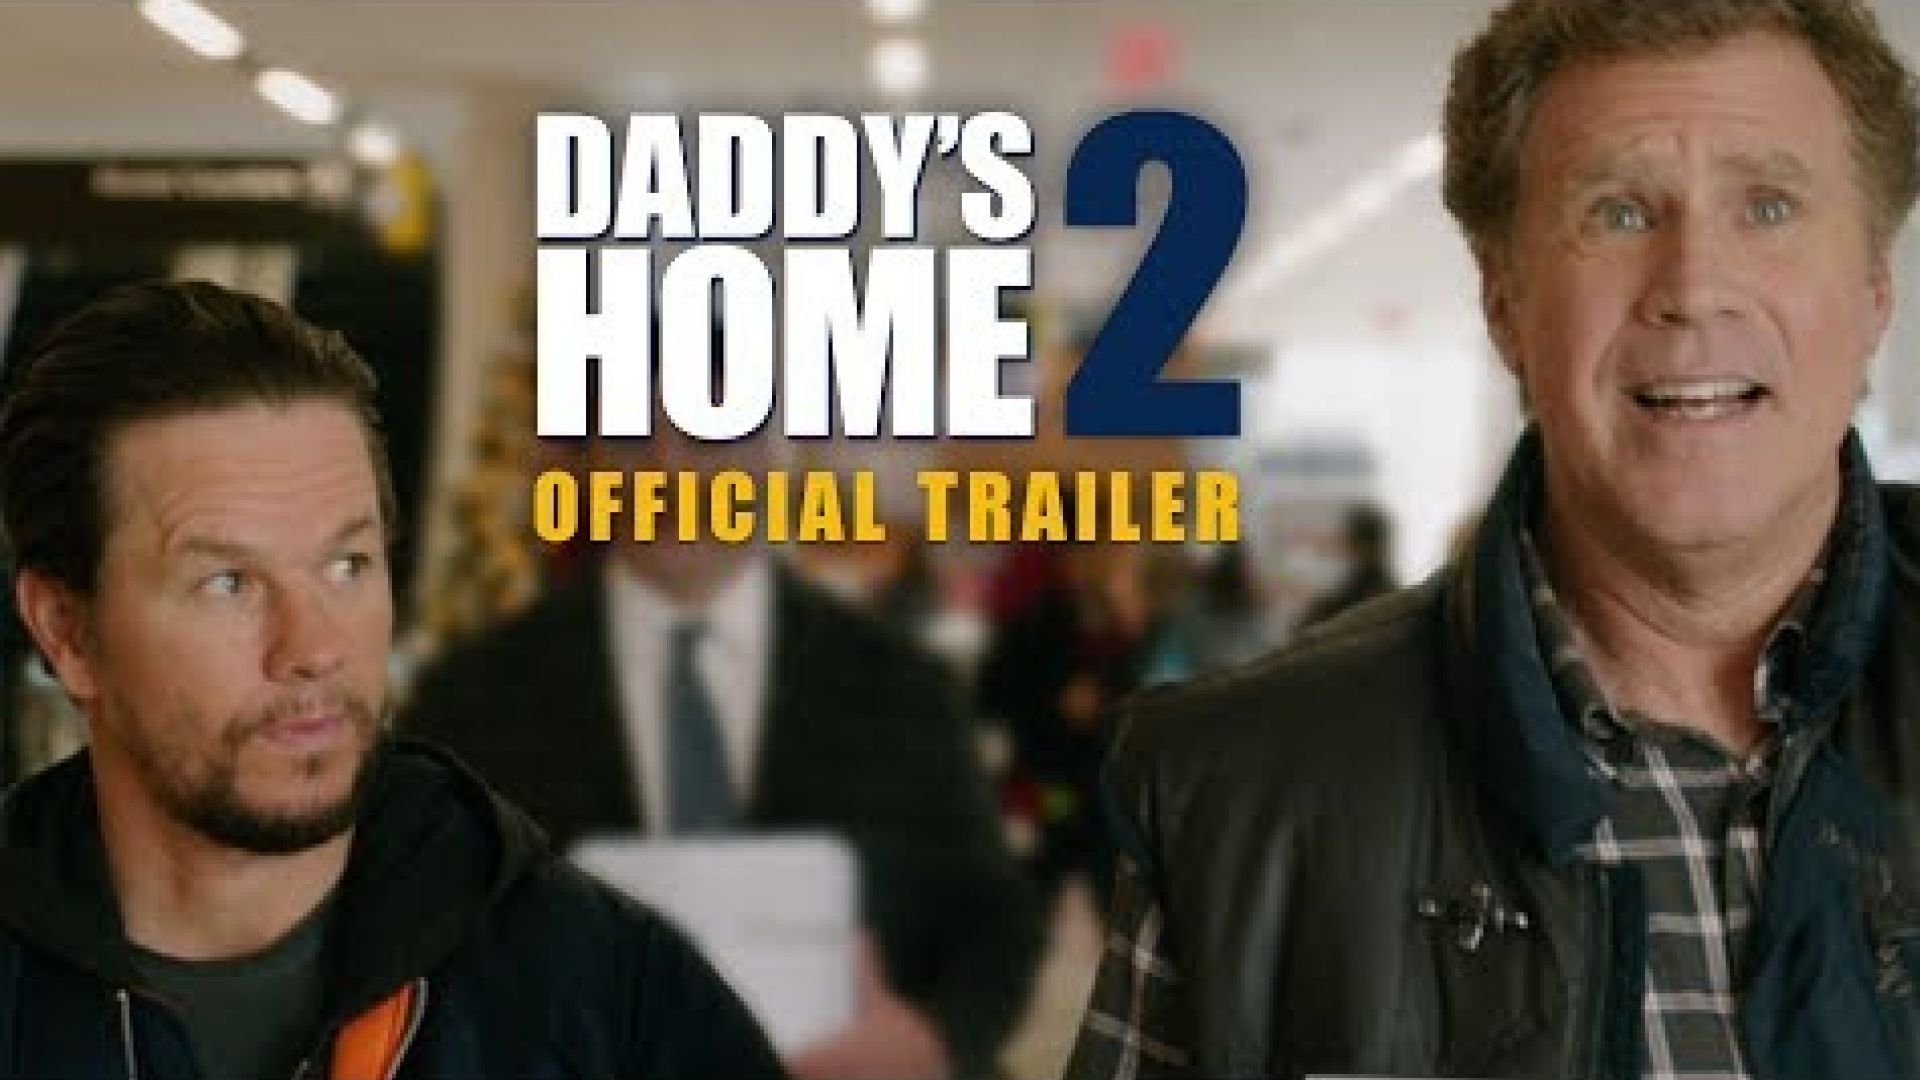 Daddy's Home 2 Trailer Paramount Pictures